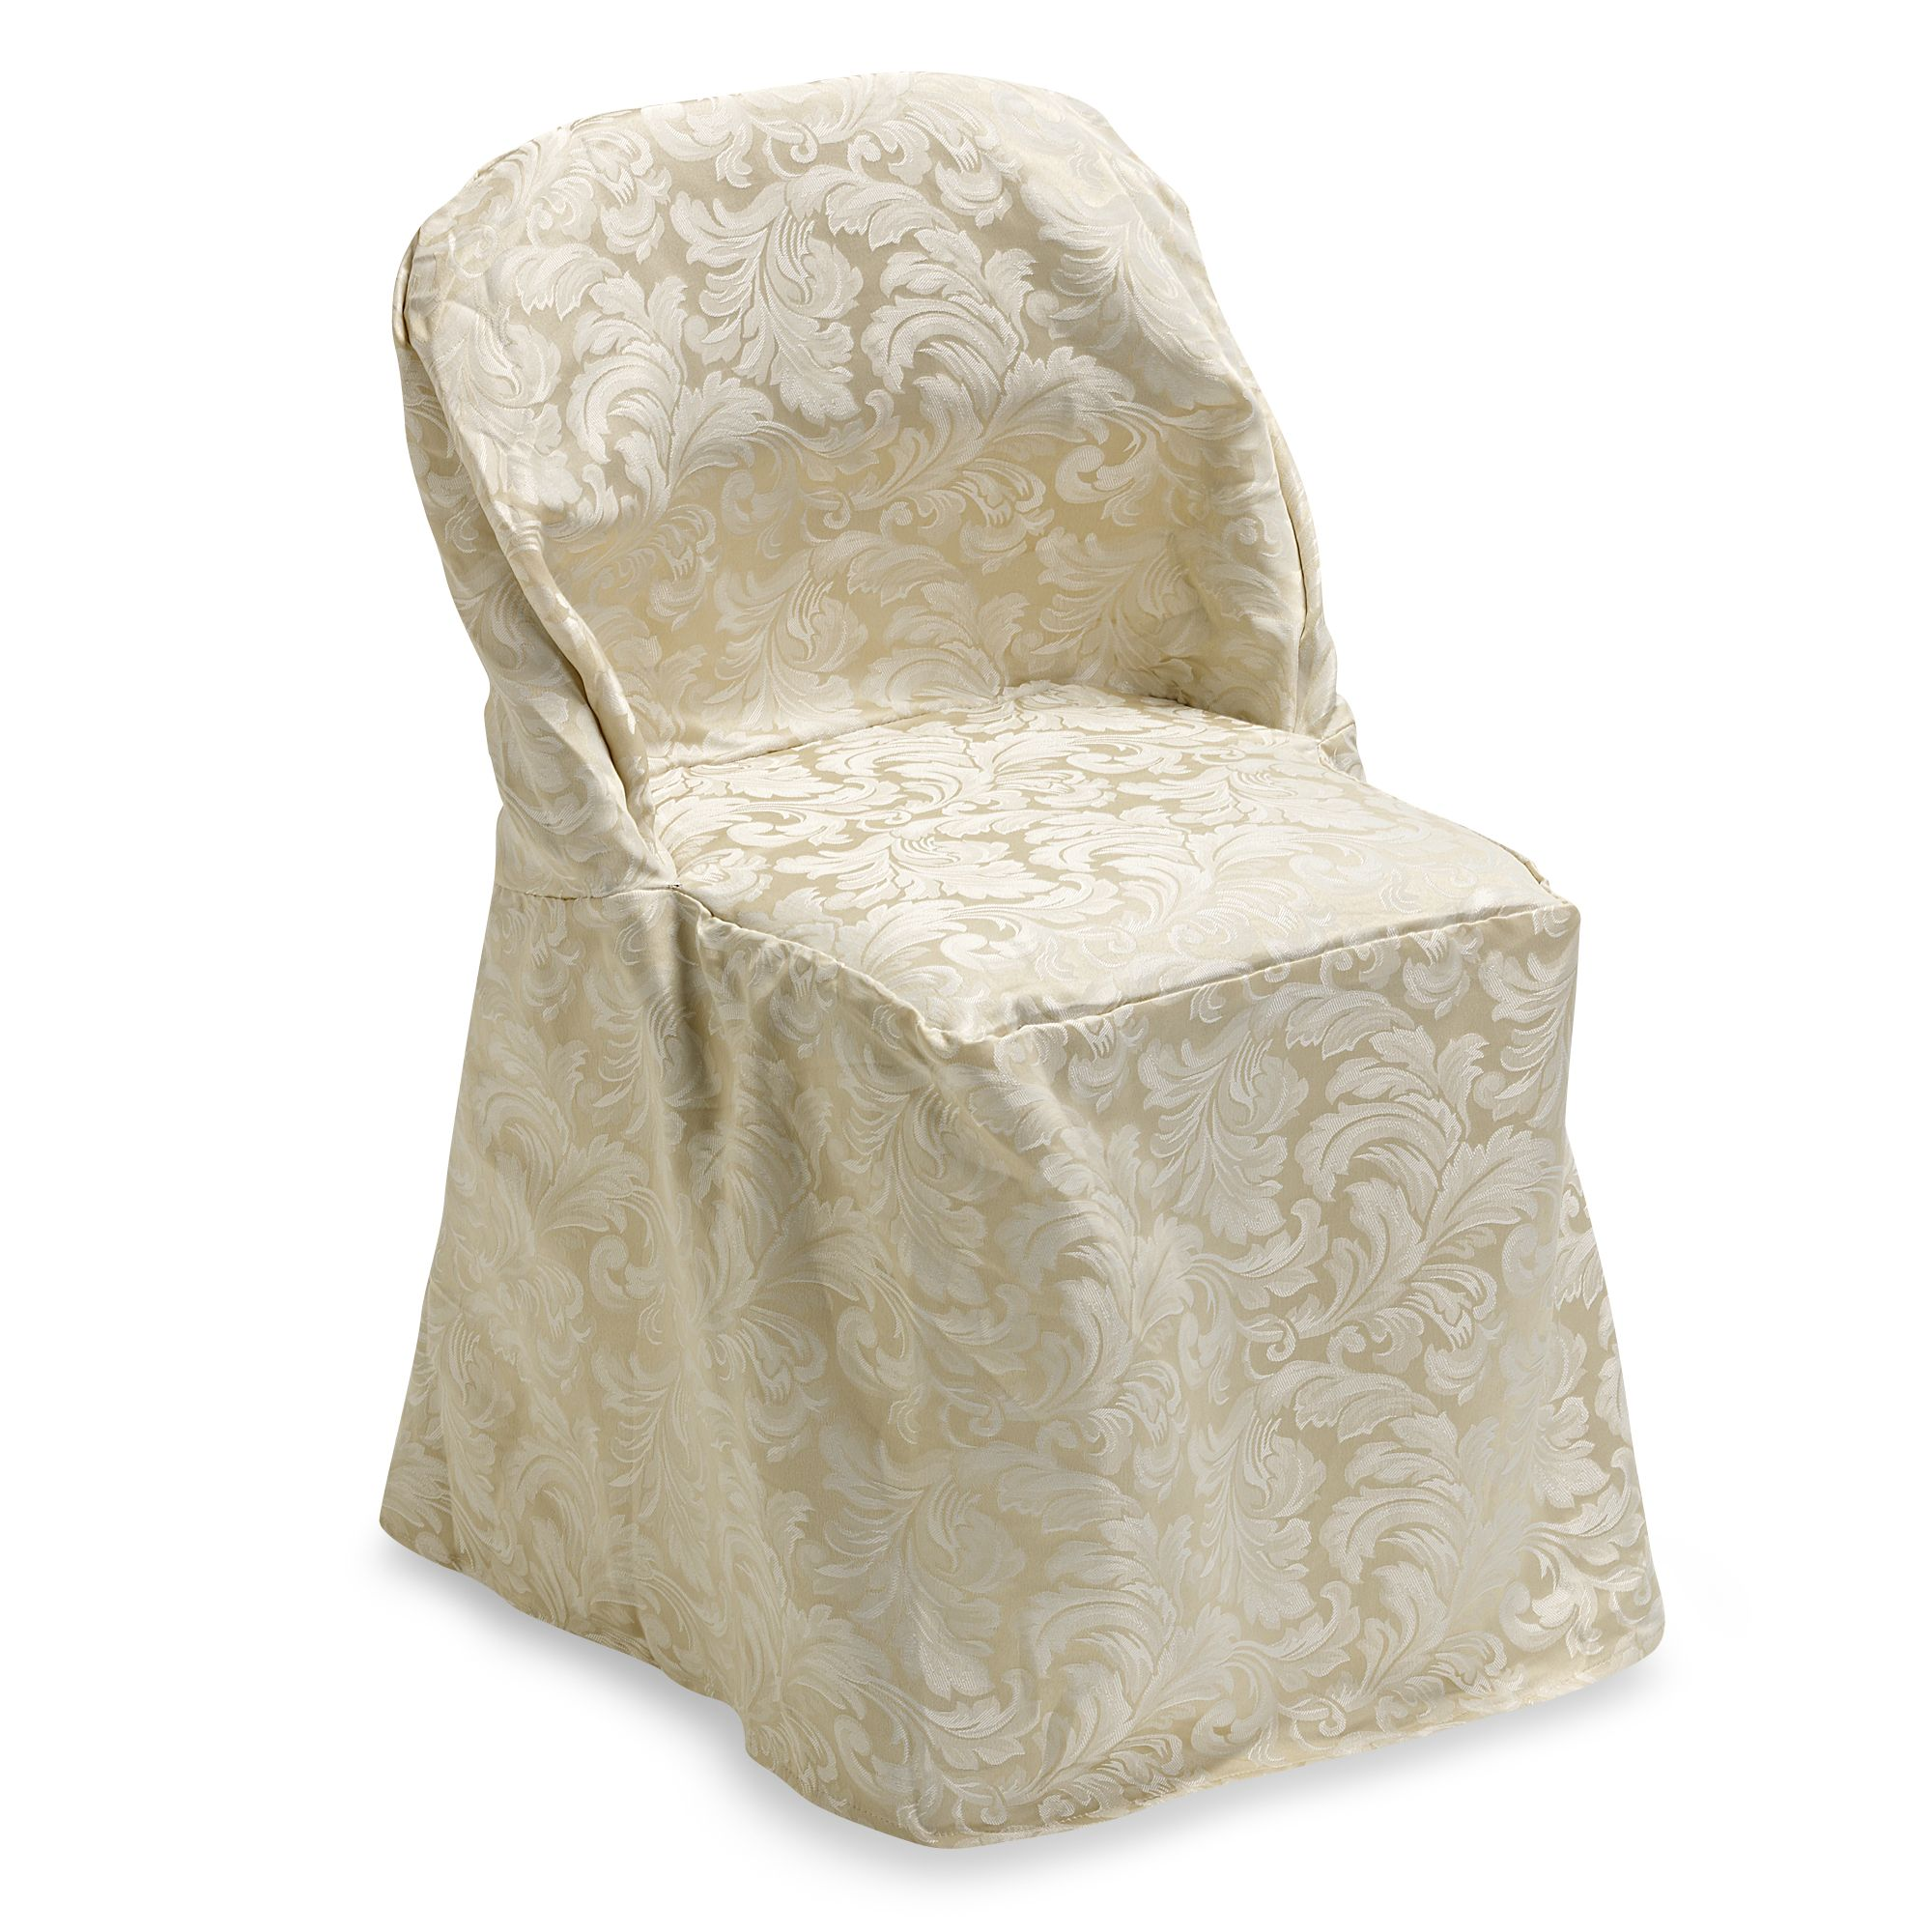 Chair Throw Covers